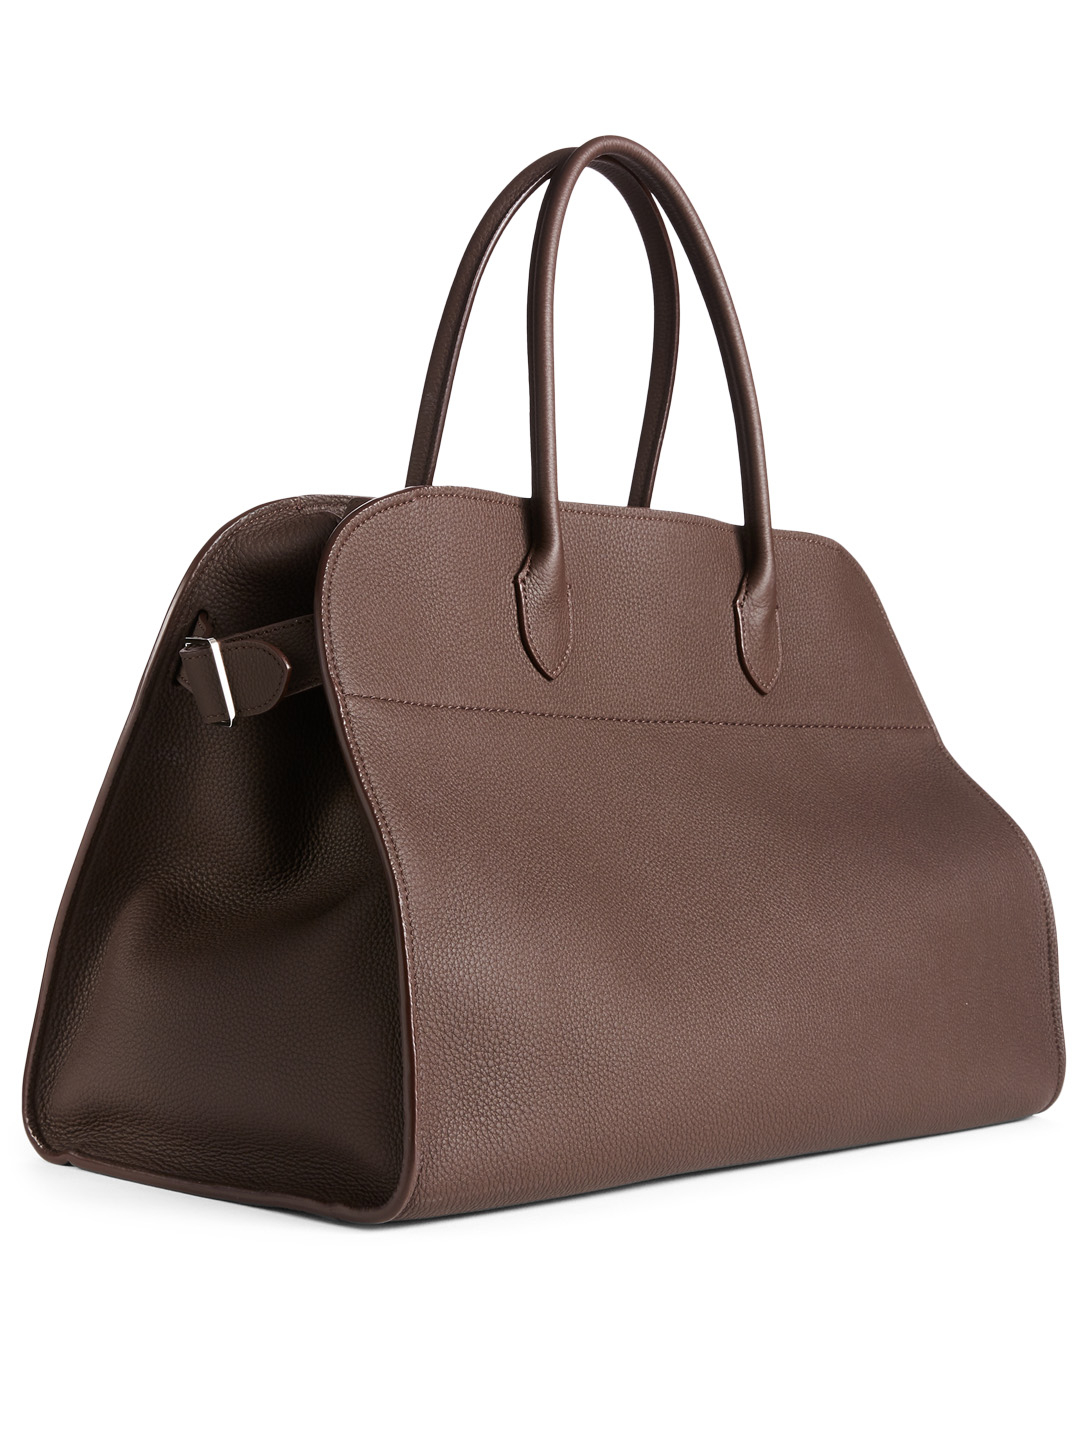 THE ROW Margaux 17 Leather Top Handle Bag Men's Brown